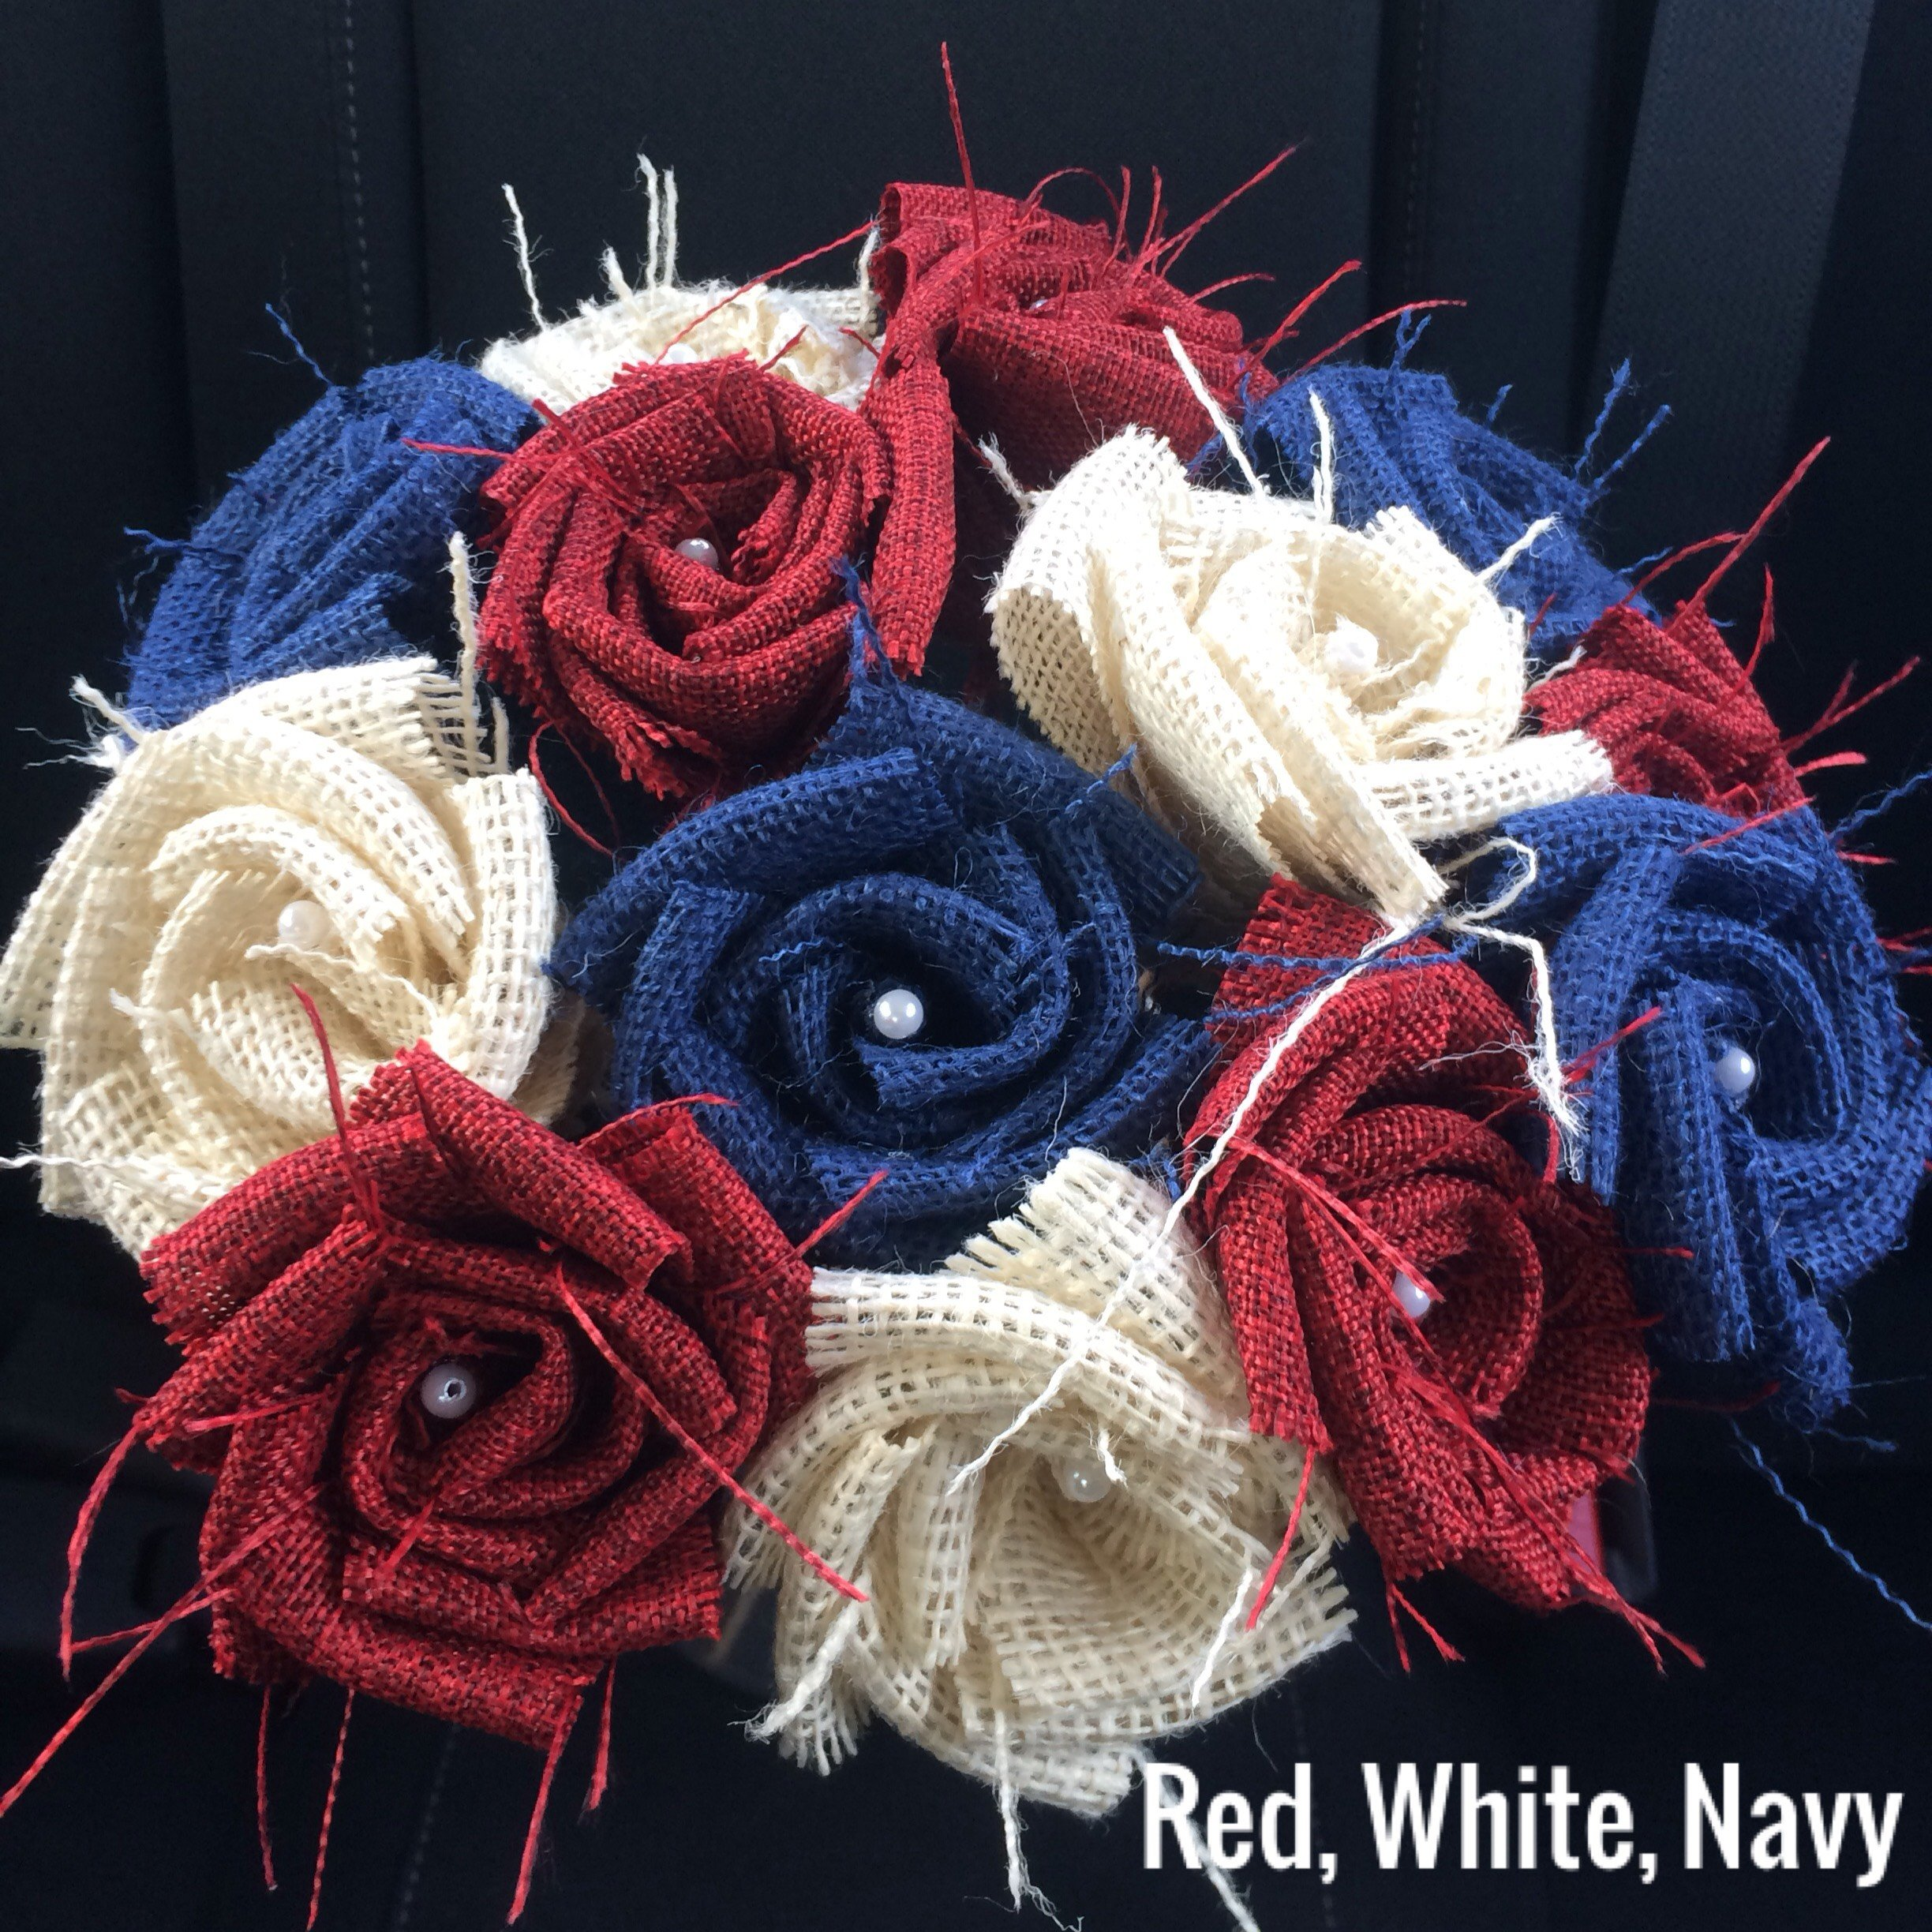 Red, White & Blue Burlap Flowers with Stem 4th of July America 4 red, 4 white, 4 navy (12 total) Burlap Rose Flowers with Stem Wedding Decor Flowers Rustic Bouquet with Wooden Stems